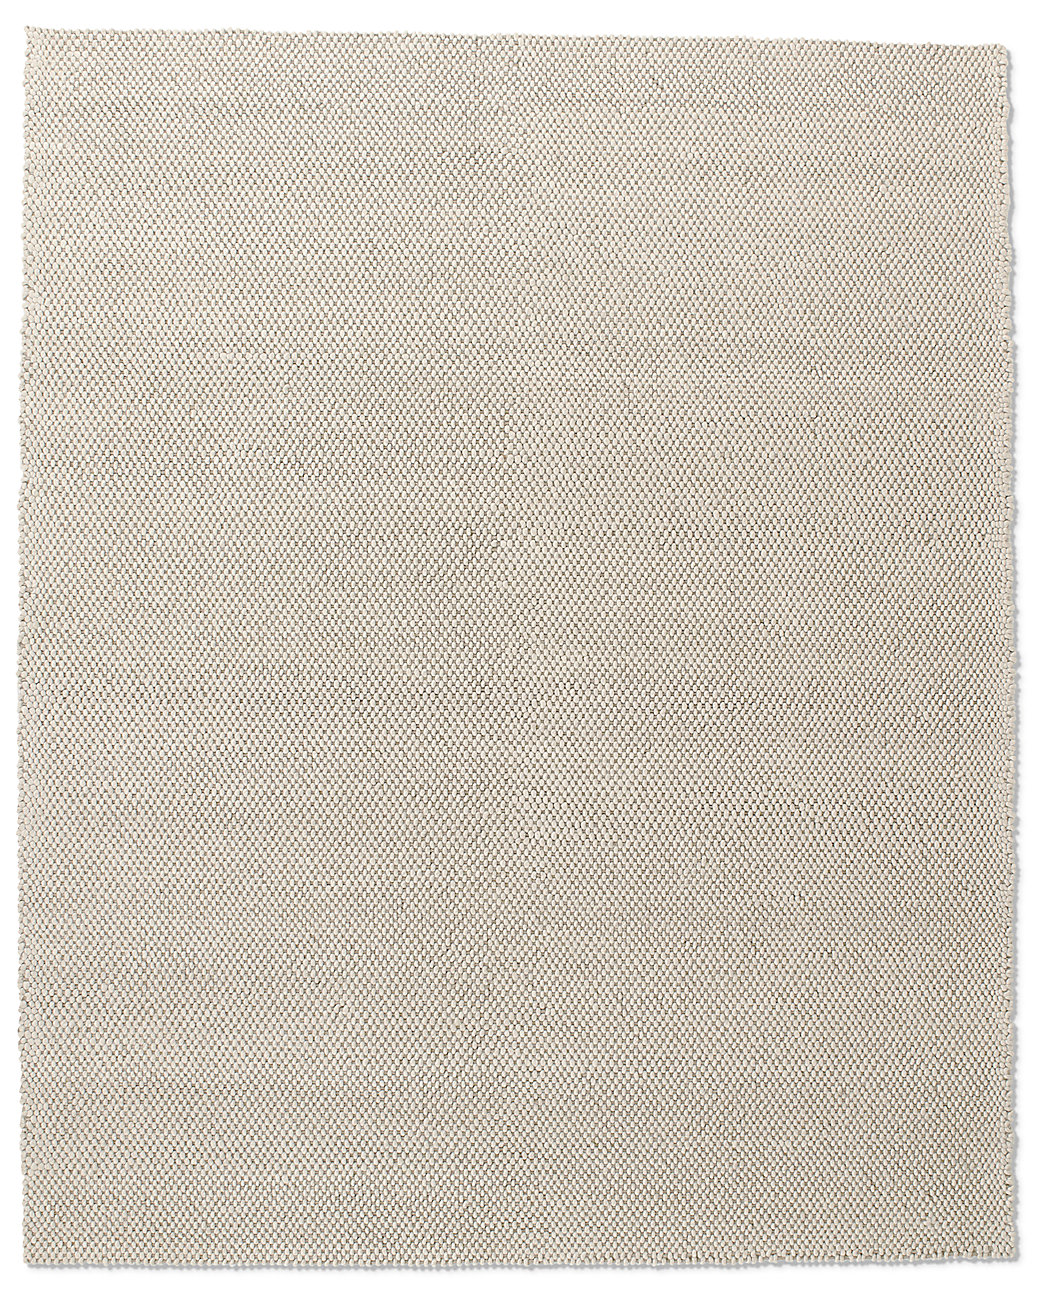 Textura Loop Wool Rug - Oatmeal